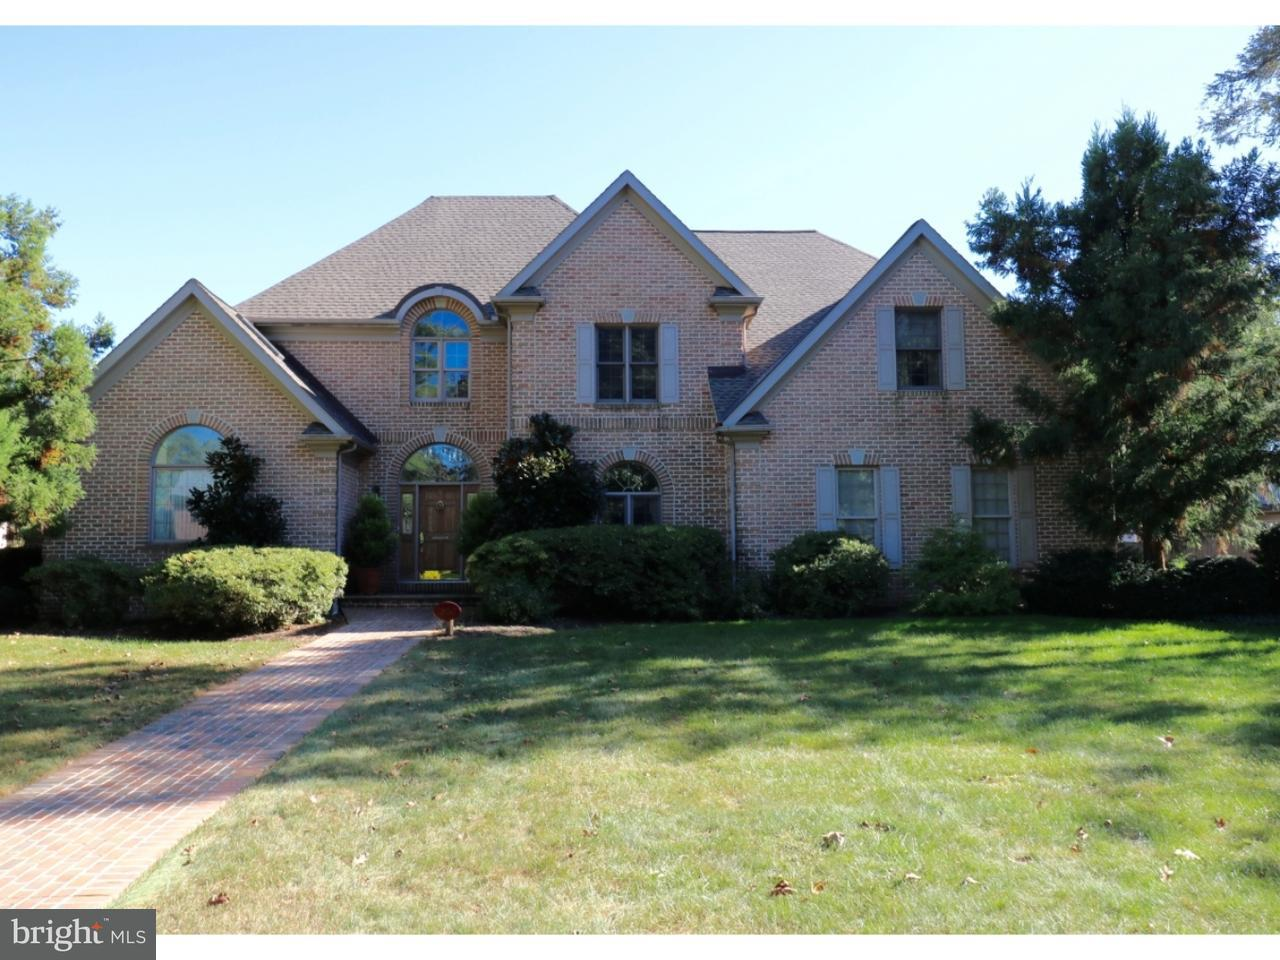 Single Family Home for Sale at 1520 READING BLVD Wyomissing, Pennsylvania 19610 United States